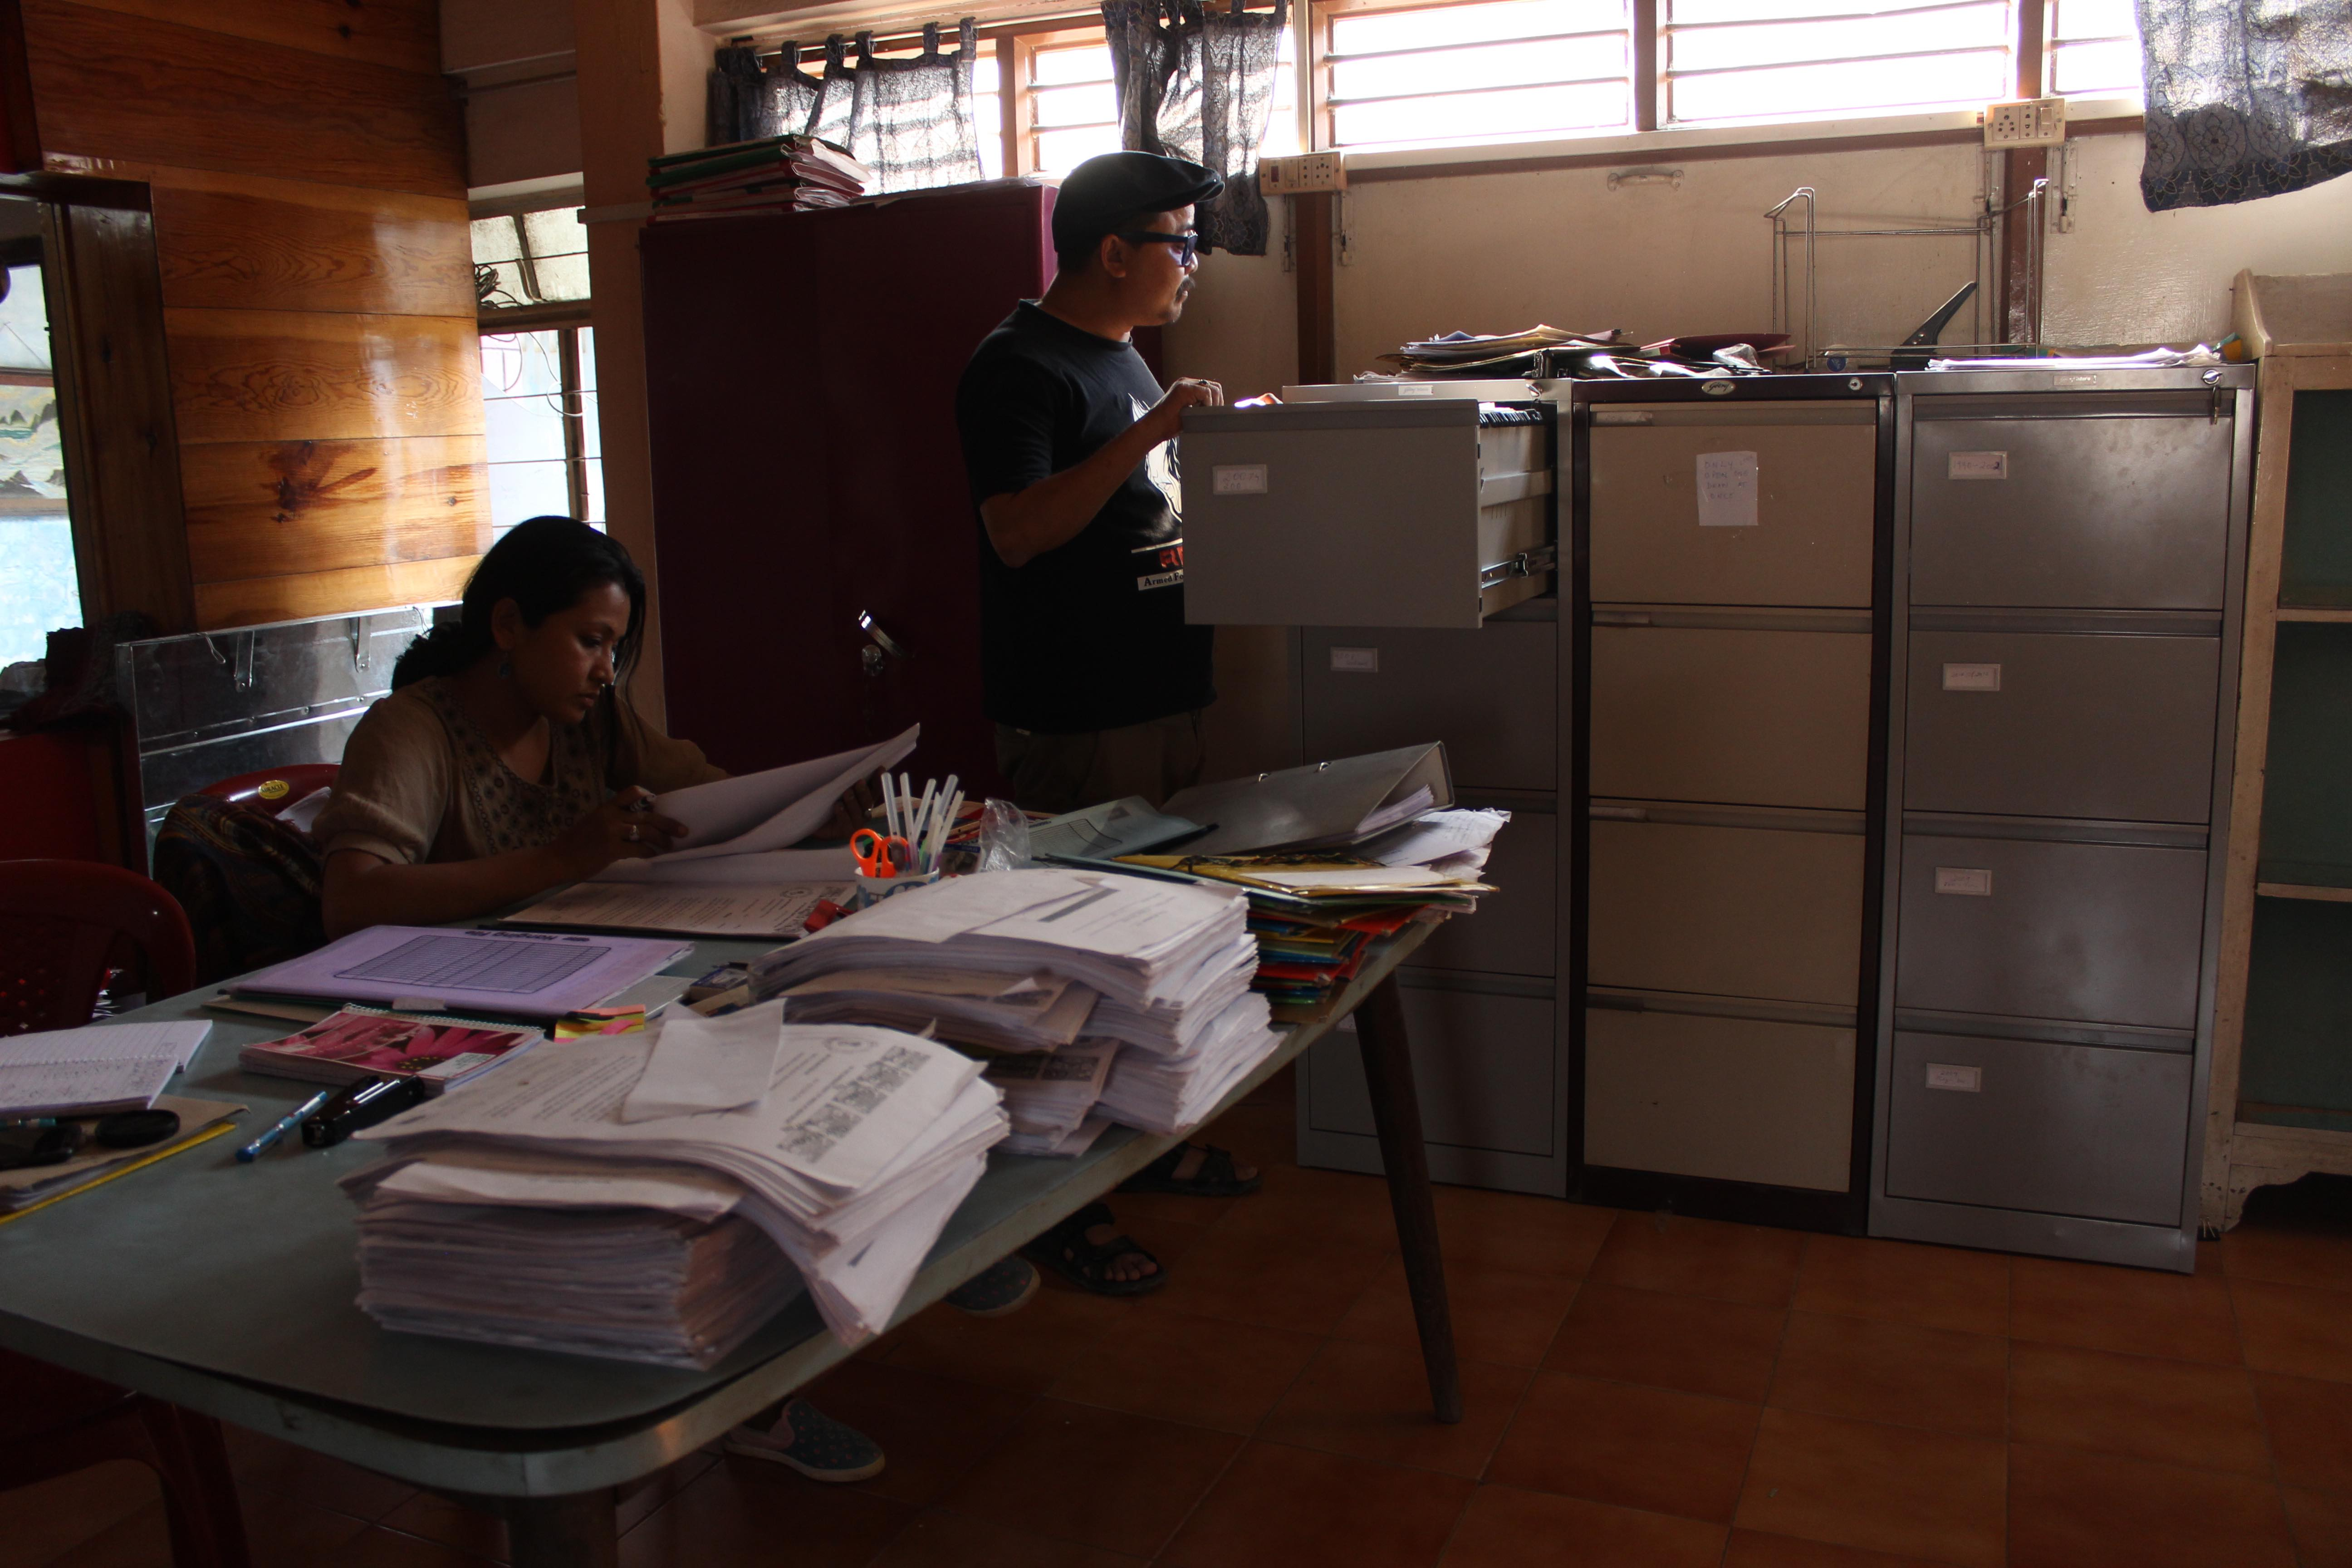 Filing cabinets of documents relating to 1,528 cases of alleged fake encounters, at the EEVFAM office in Imphal. Credit: Anoo Bhuyan